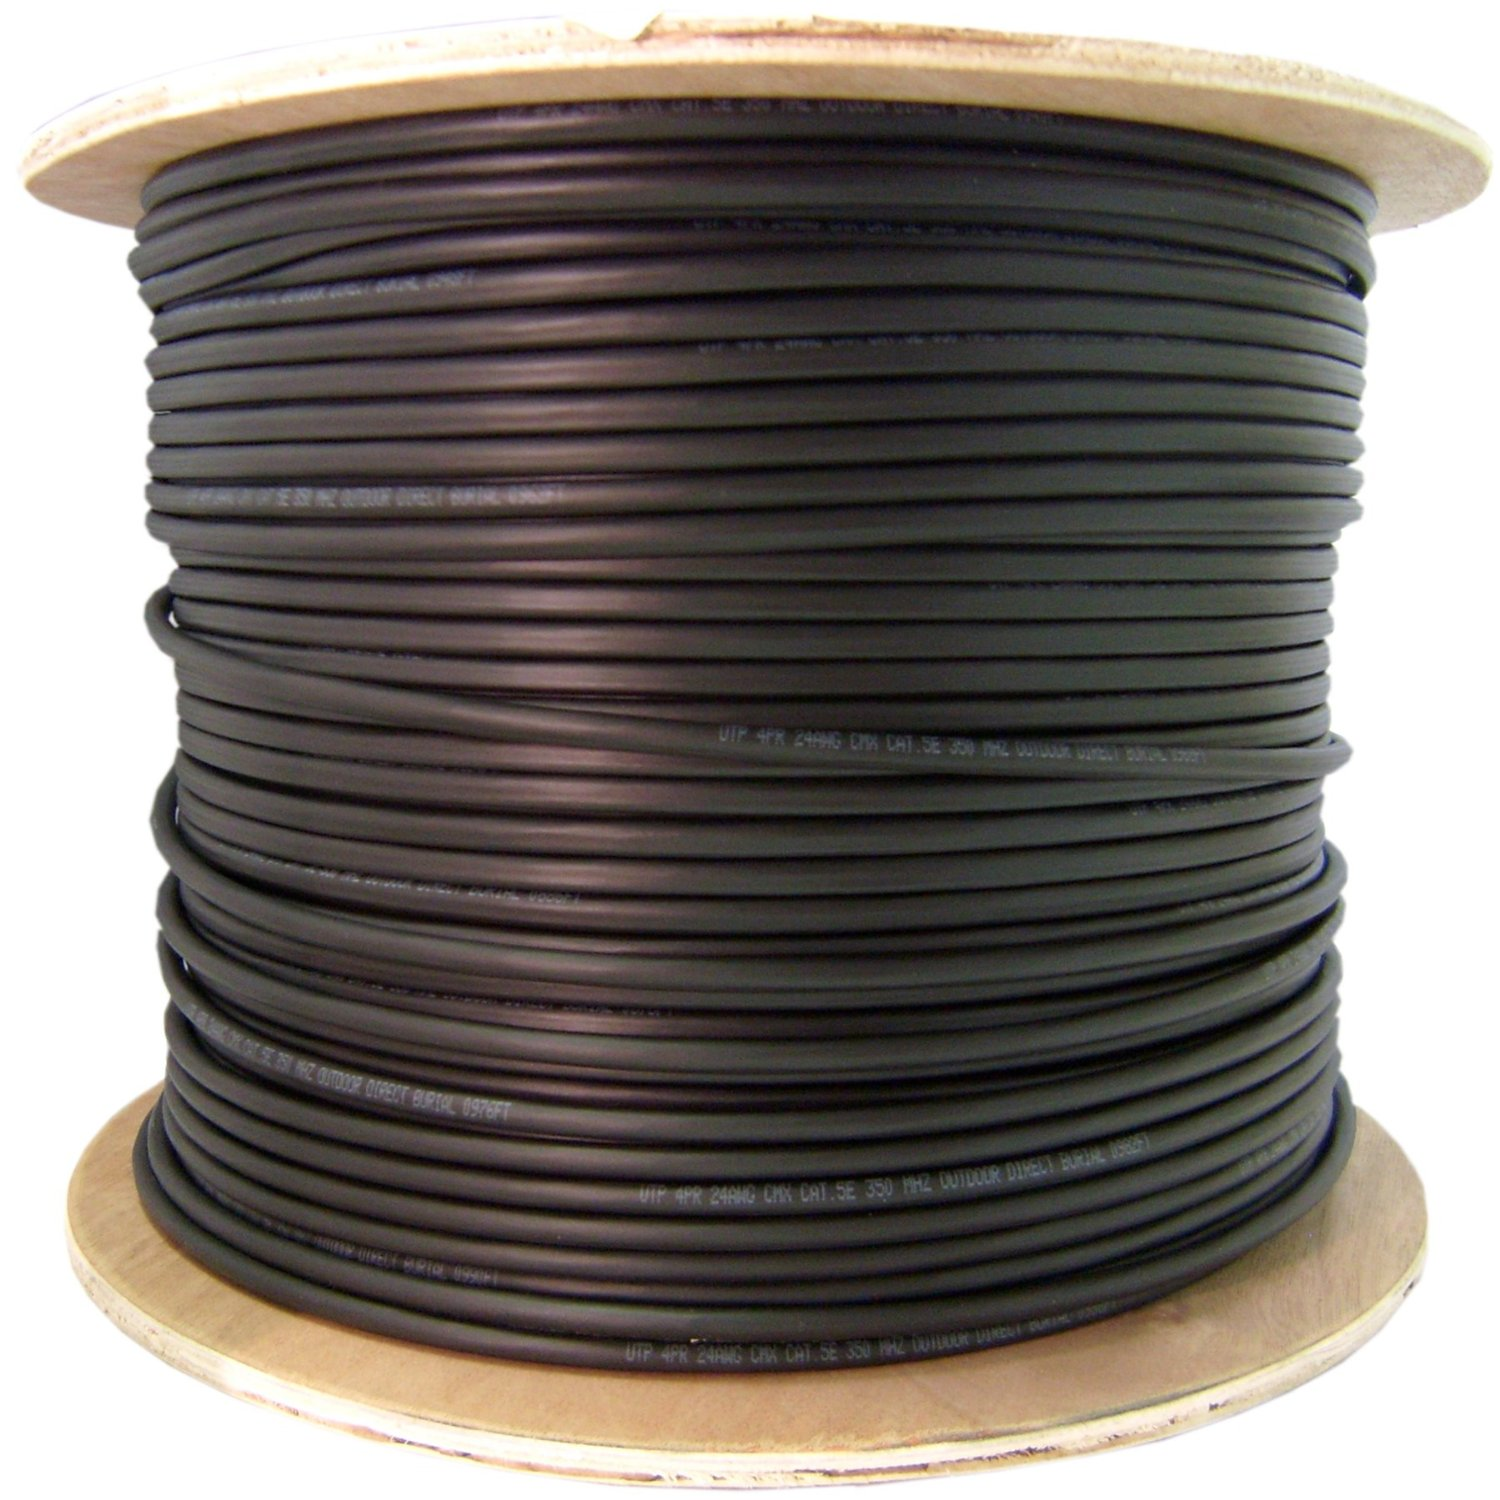 Cable Wholesale - Direct Burial / Outdoor rated Cat 6 Black Ethernet Cable, Solid, CMXT, STP (Shielded Twisted Pair), Foil + Waterproof Tape, 23 AWG, Spool, 1000 foot